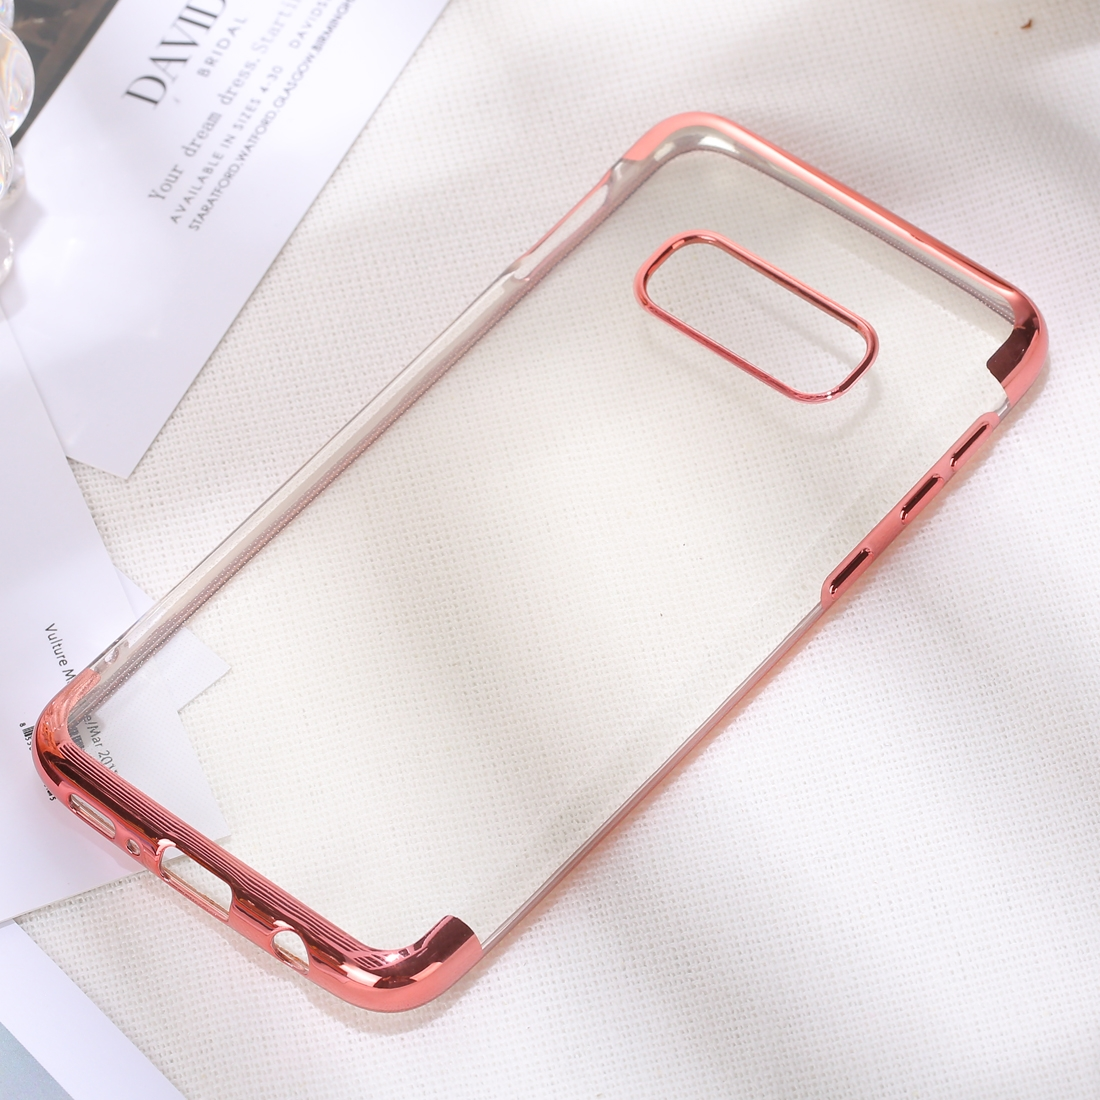 Three Sections Electroplating Side TPU Protective Back Case for Galaxy S10 E (Rose Gold)